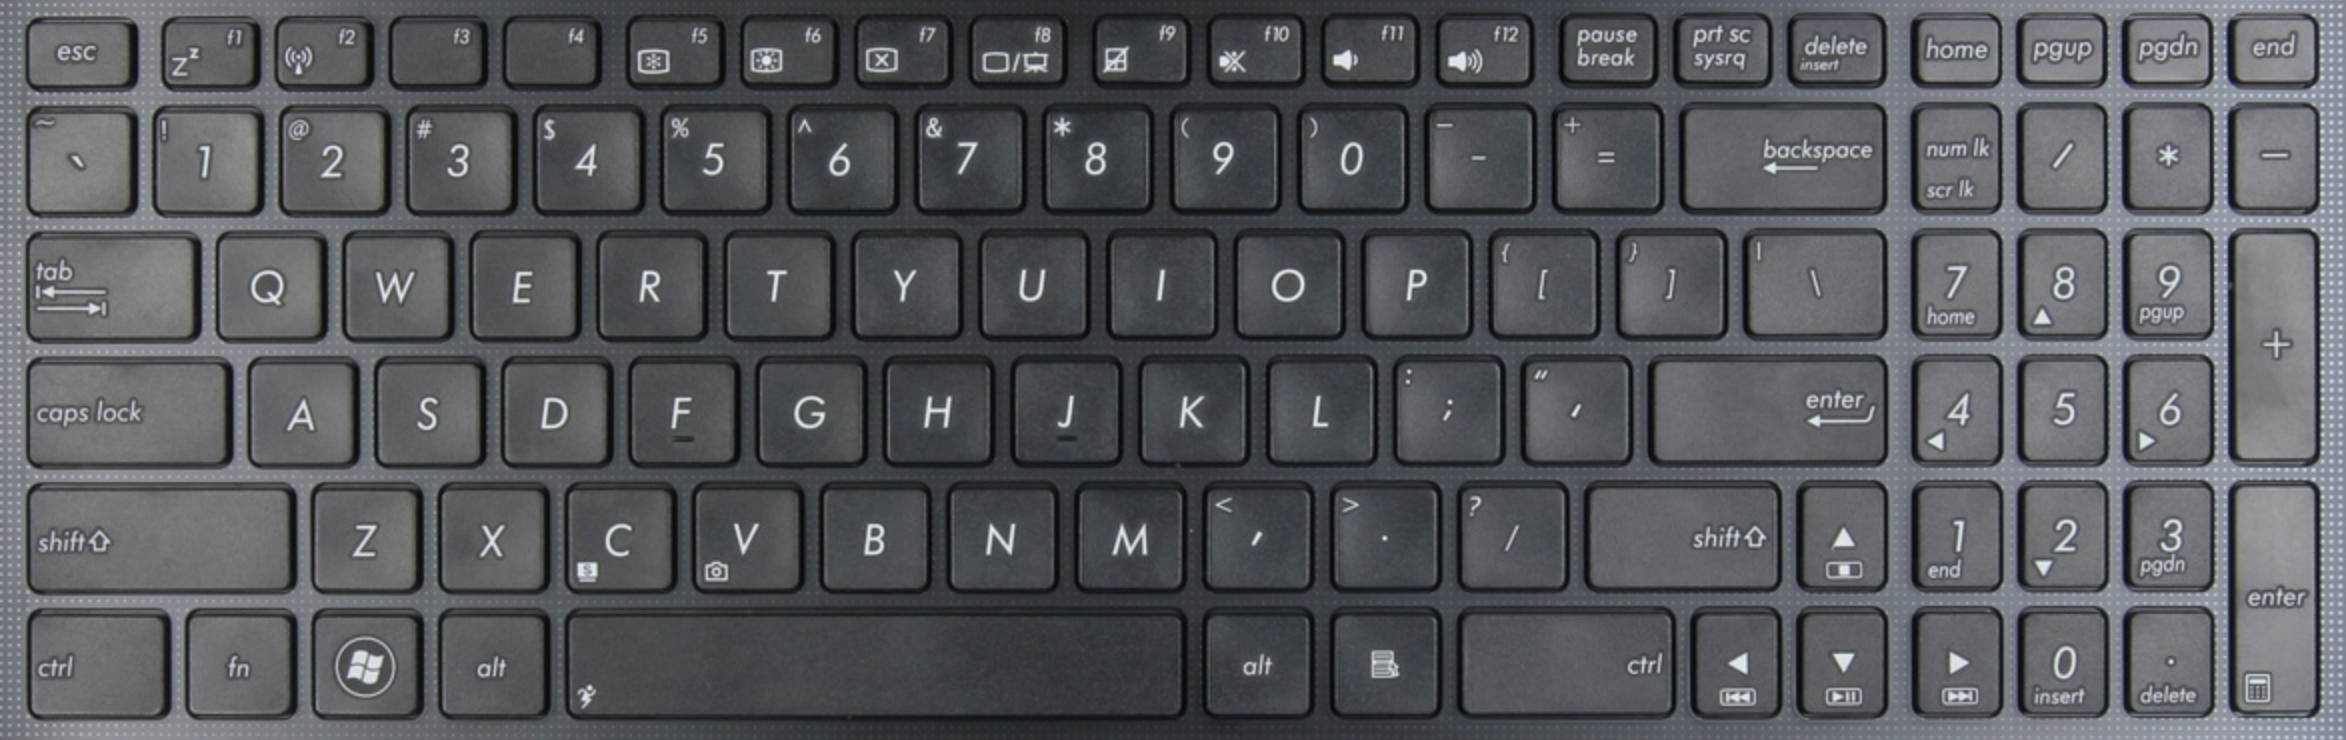 asus_x501_laptop_keyboard_key